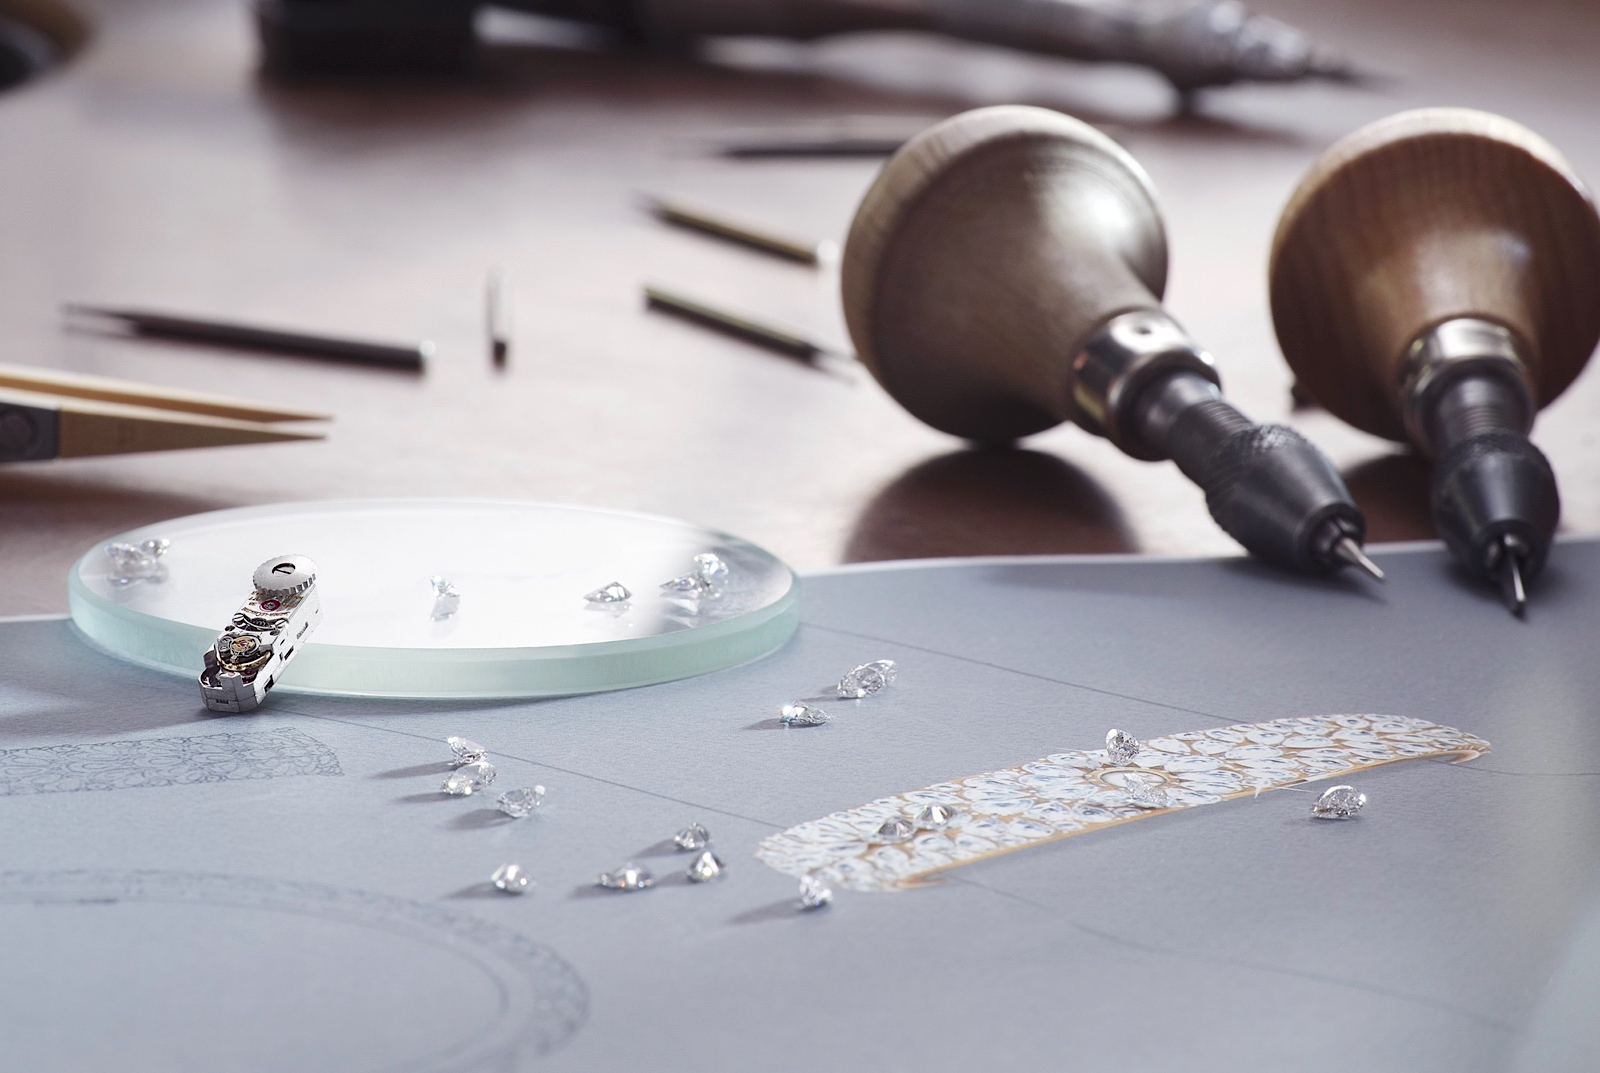 Jaeger-LeCoultre Calibre 101 High Jewellery - calibre 101